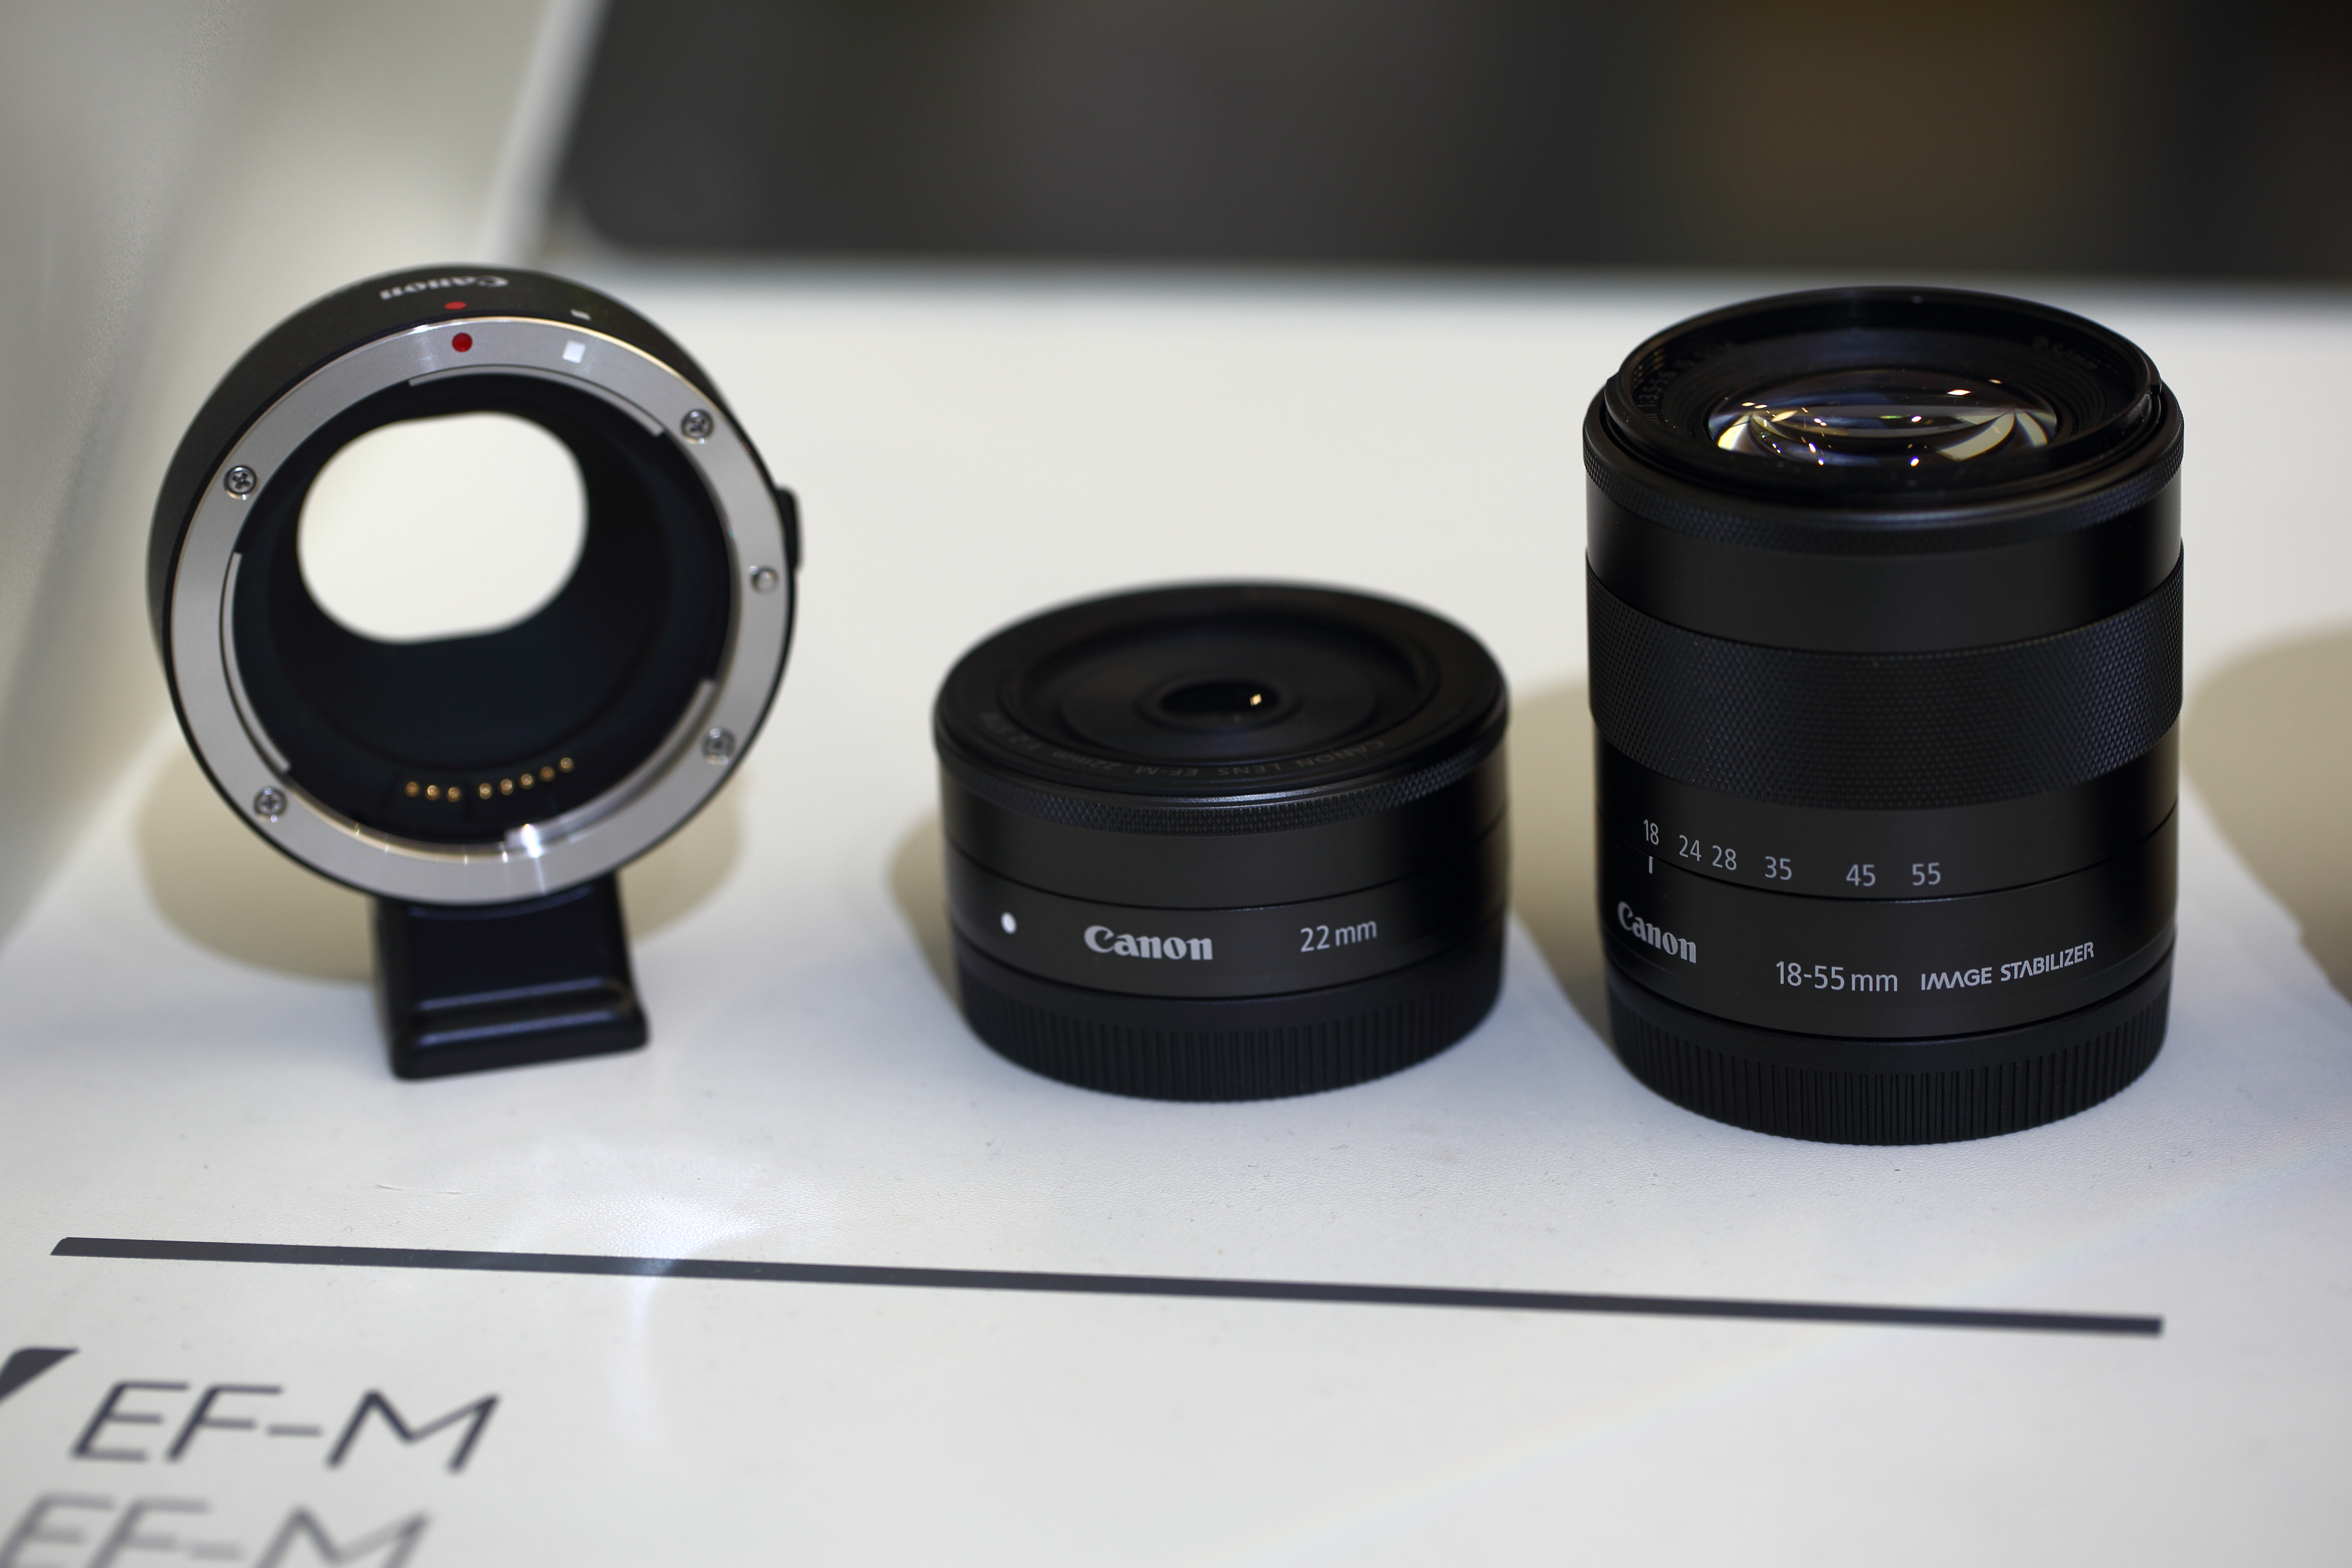 Canon Ef M Lens Mount Wikiwand Eos M10 Kit 15 45 22mm